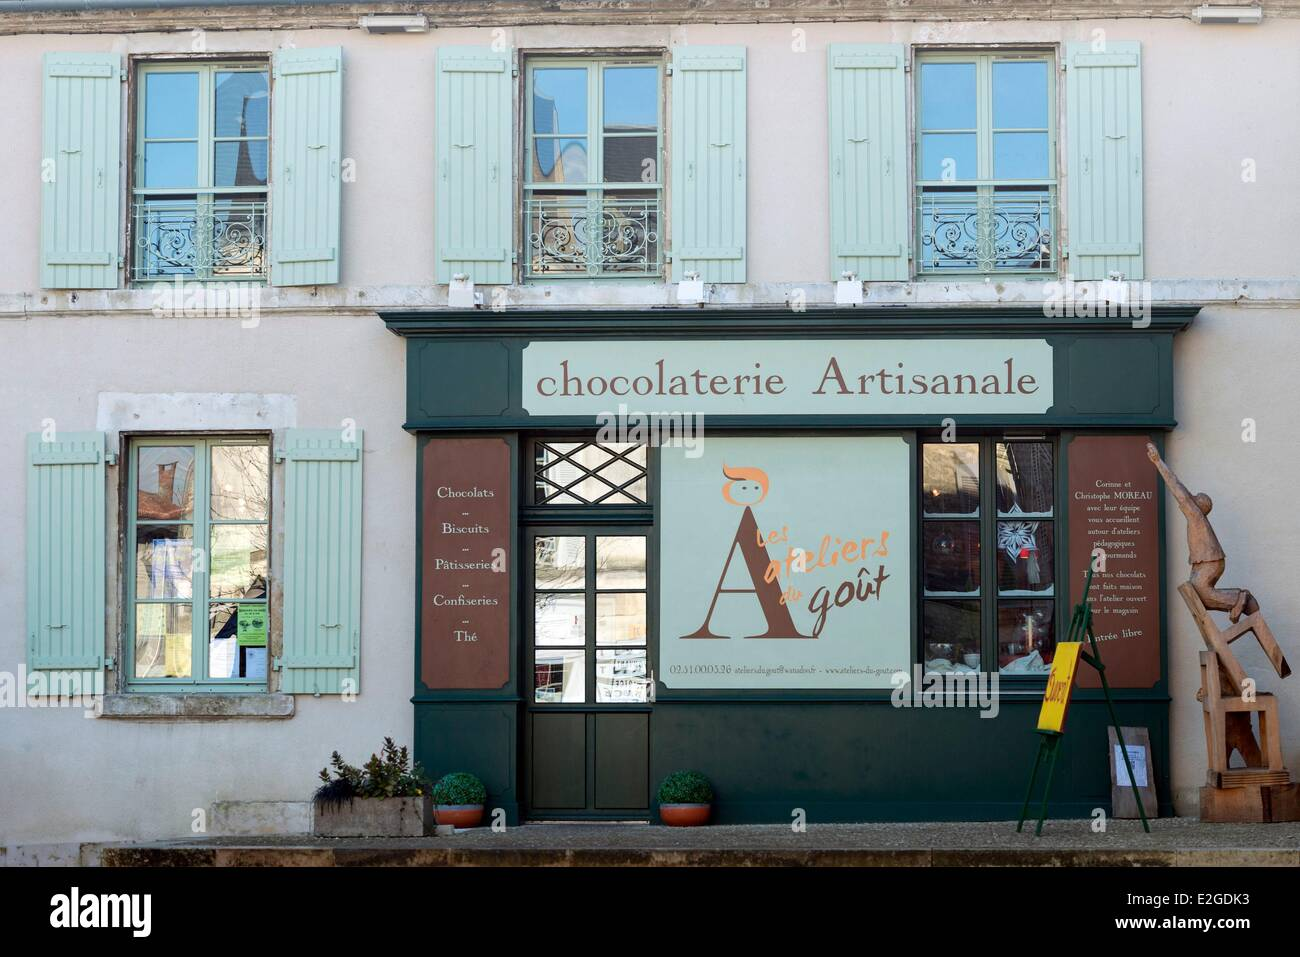 France Vendee Foussais Payre handmade chocolate - Stock Image